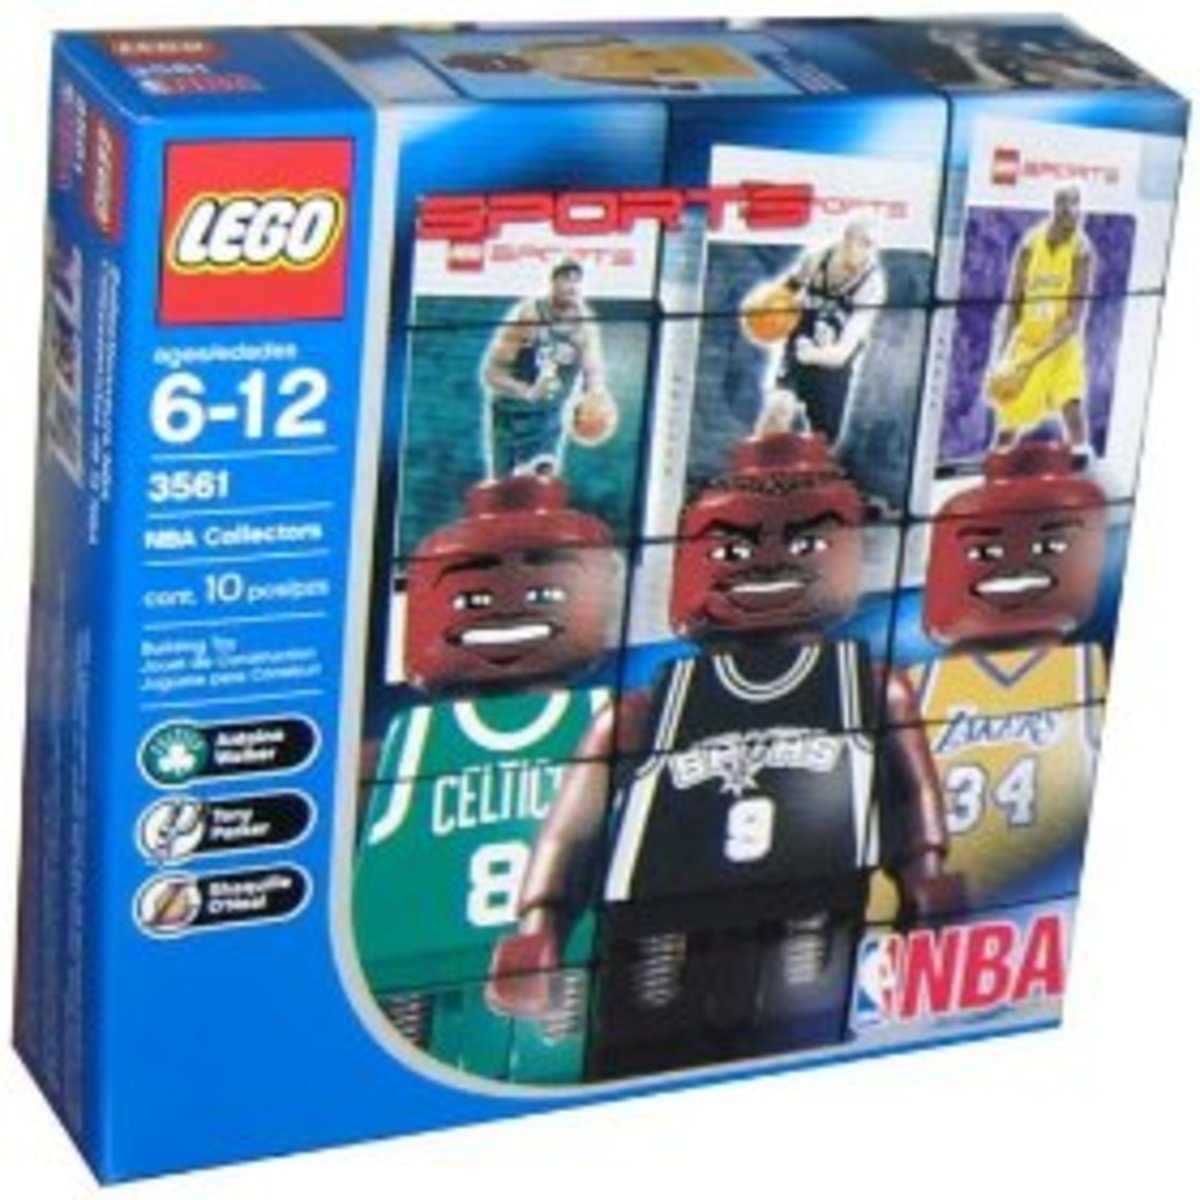 Lego NBA Collector Set #2 in its box